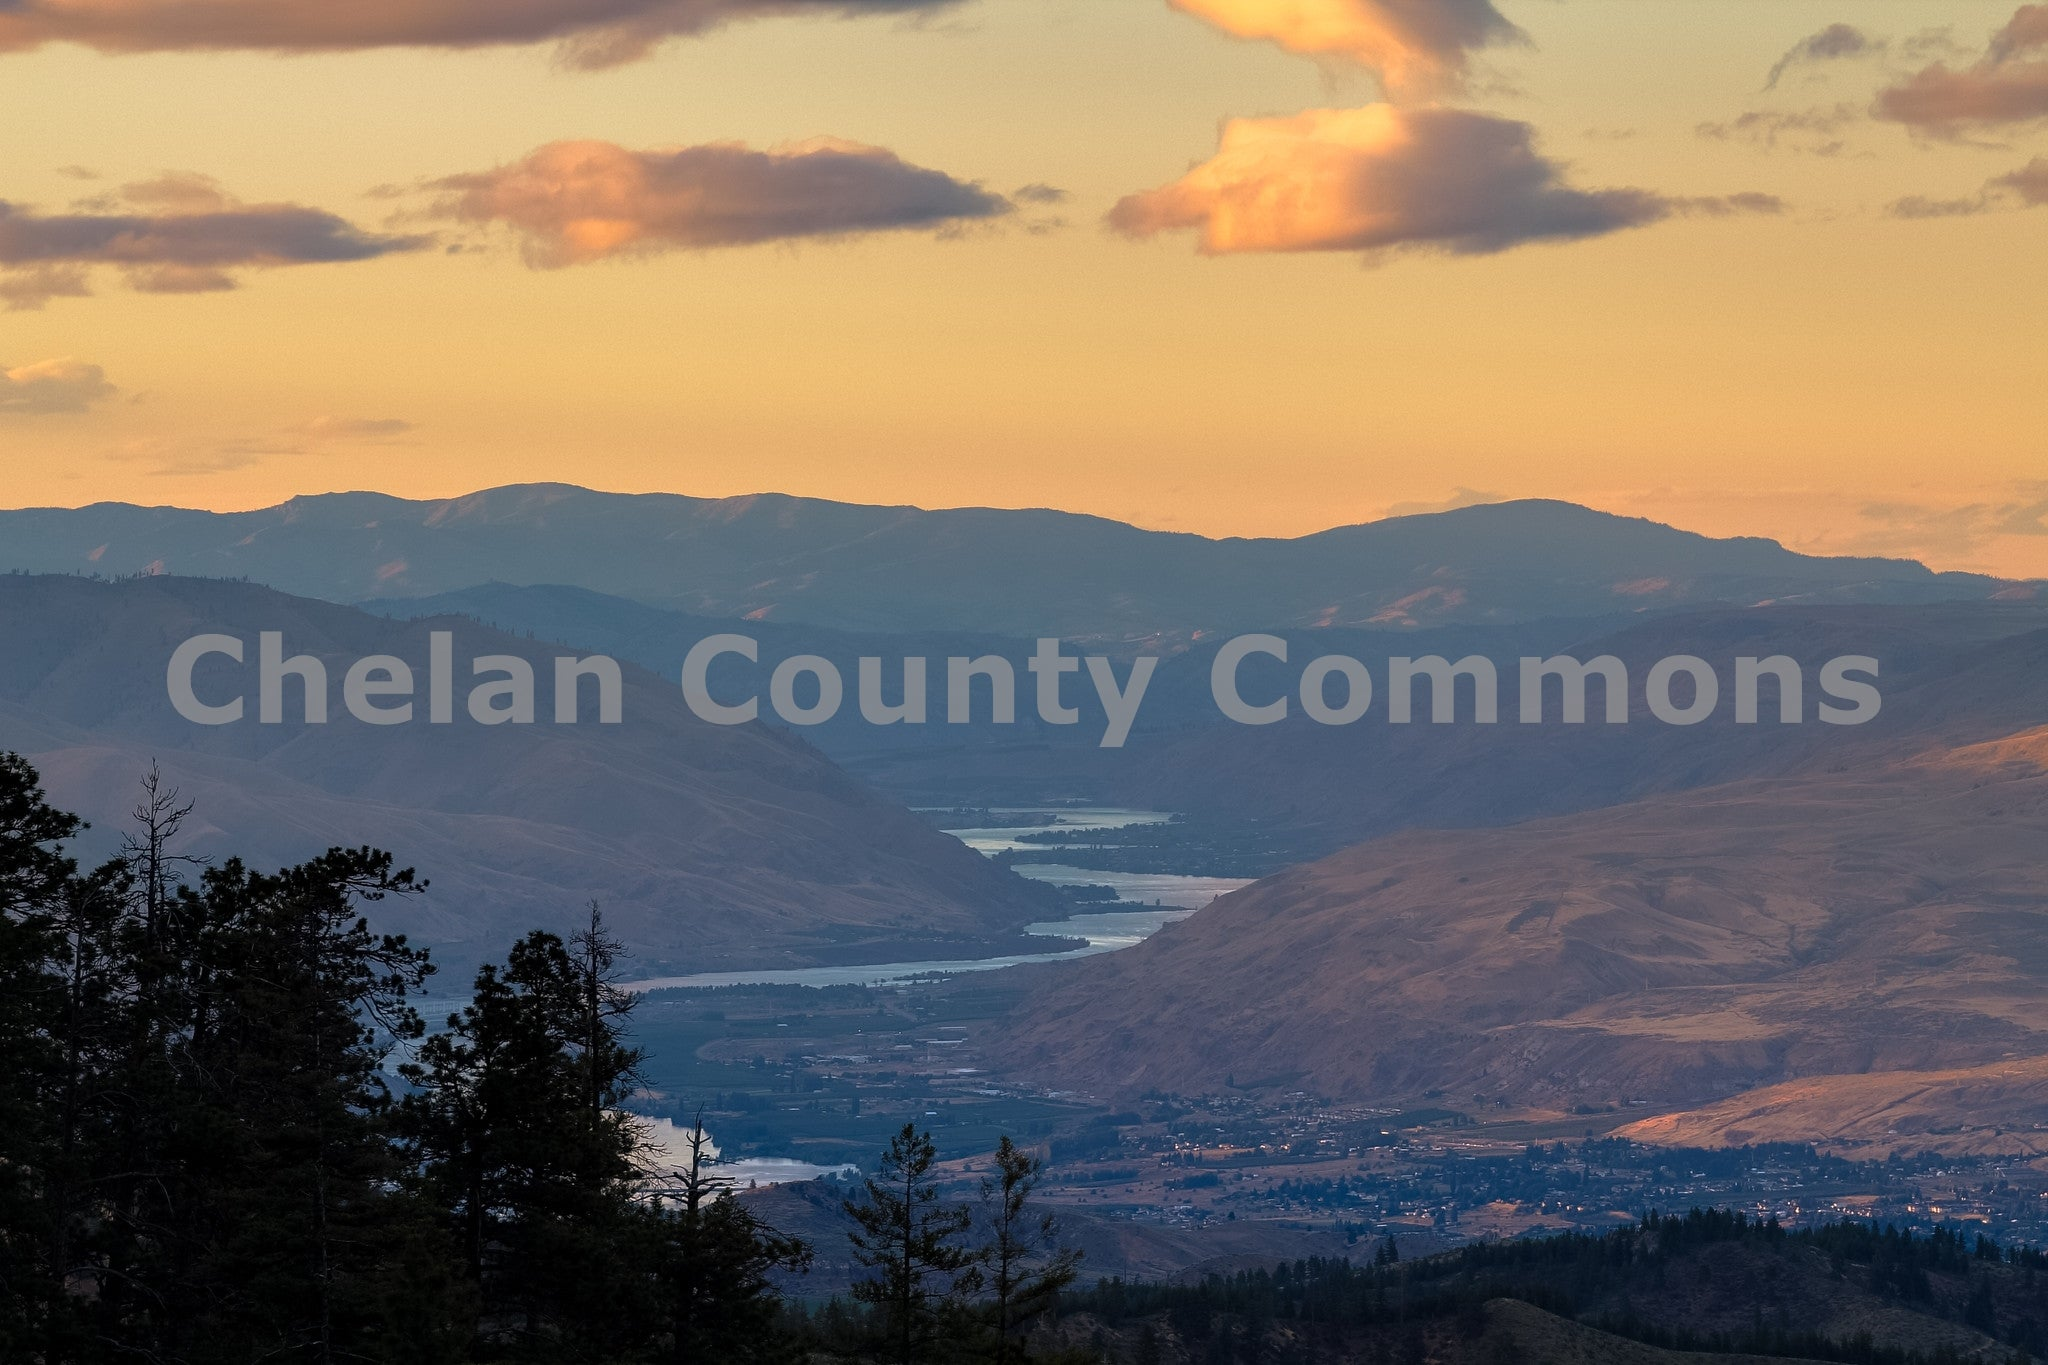 f5588e4e843 Columbia River Pink Sunset , JPG Image Download - Travis Knoop, Chelan  County Commons